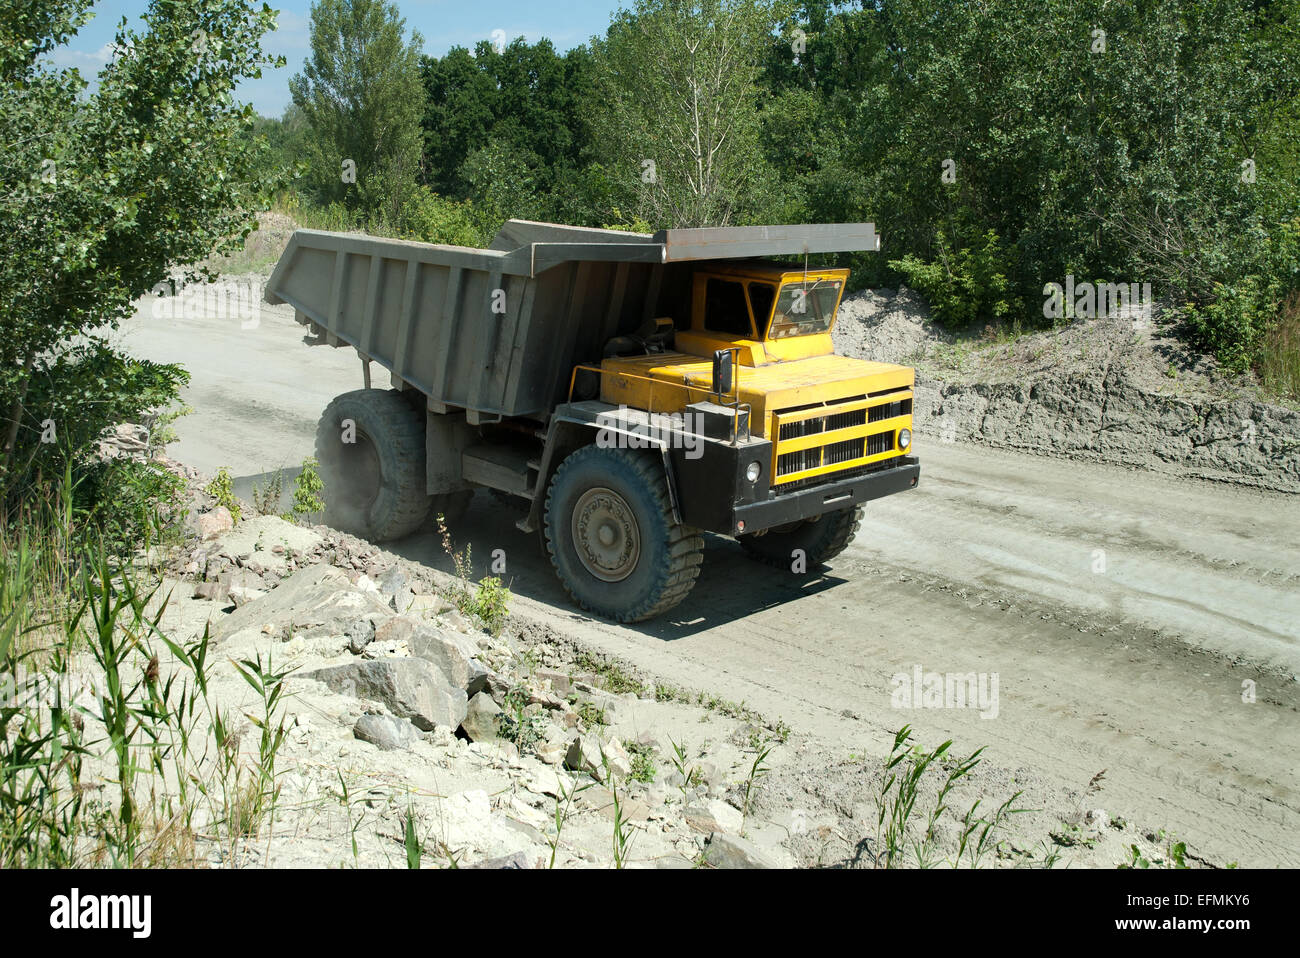 Quarry Loading Truck Stone Stock Photos & Quarry Loading Truck Stone